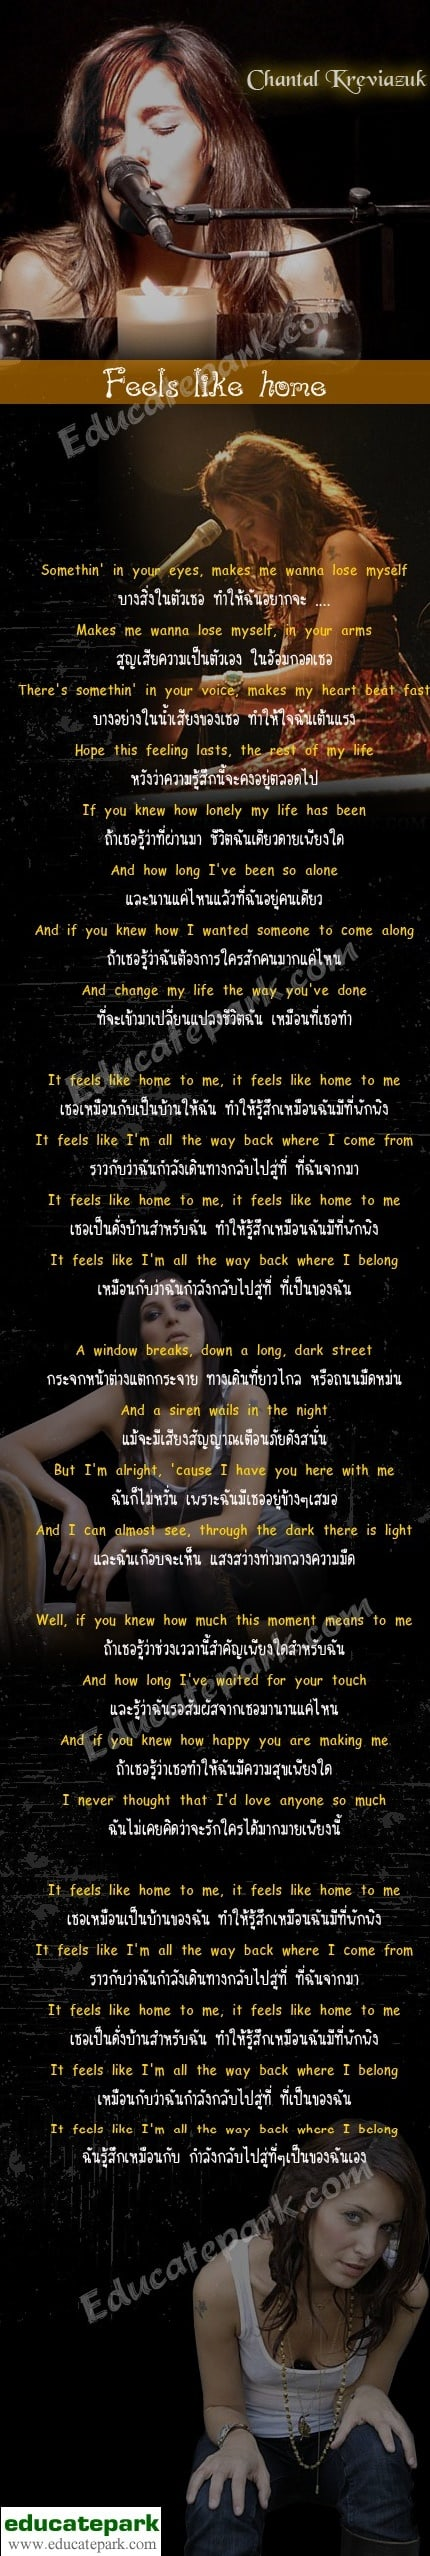 แปลเพลง Feels Like Home - Chantal Kreviazuk